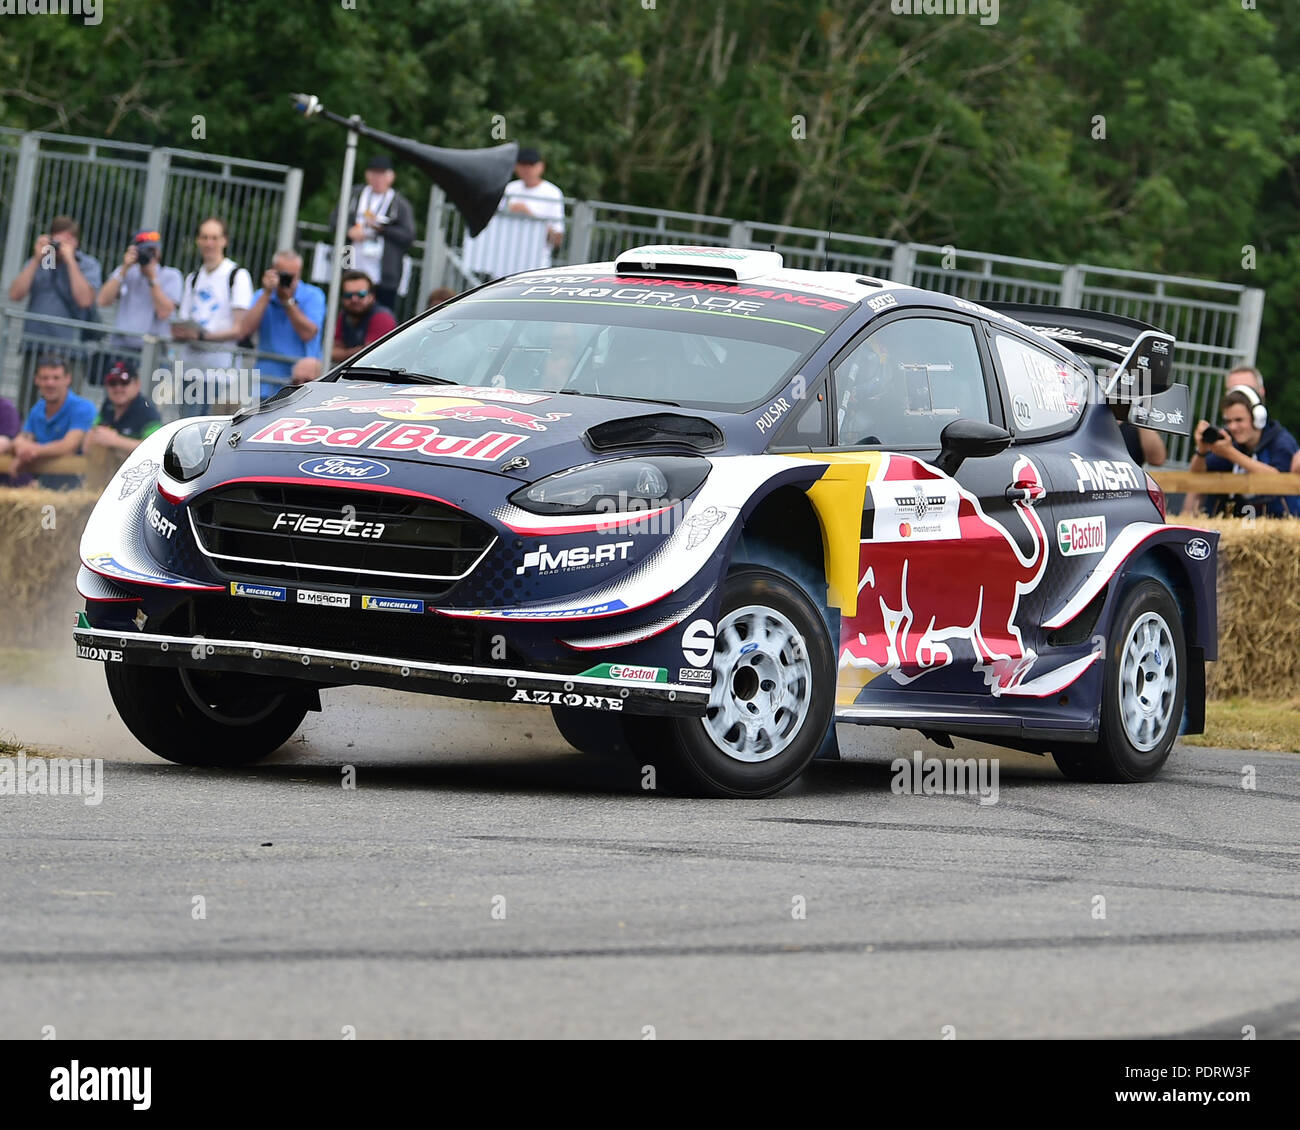 ford fiesta wrc stock photos ford fiesta wrc stock images alamy. Black Bedroom Furniture Sets. Home Design Ideas